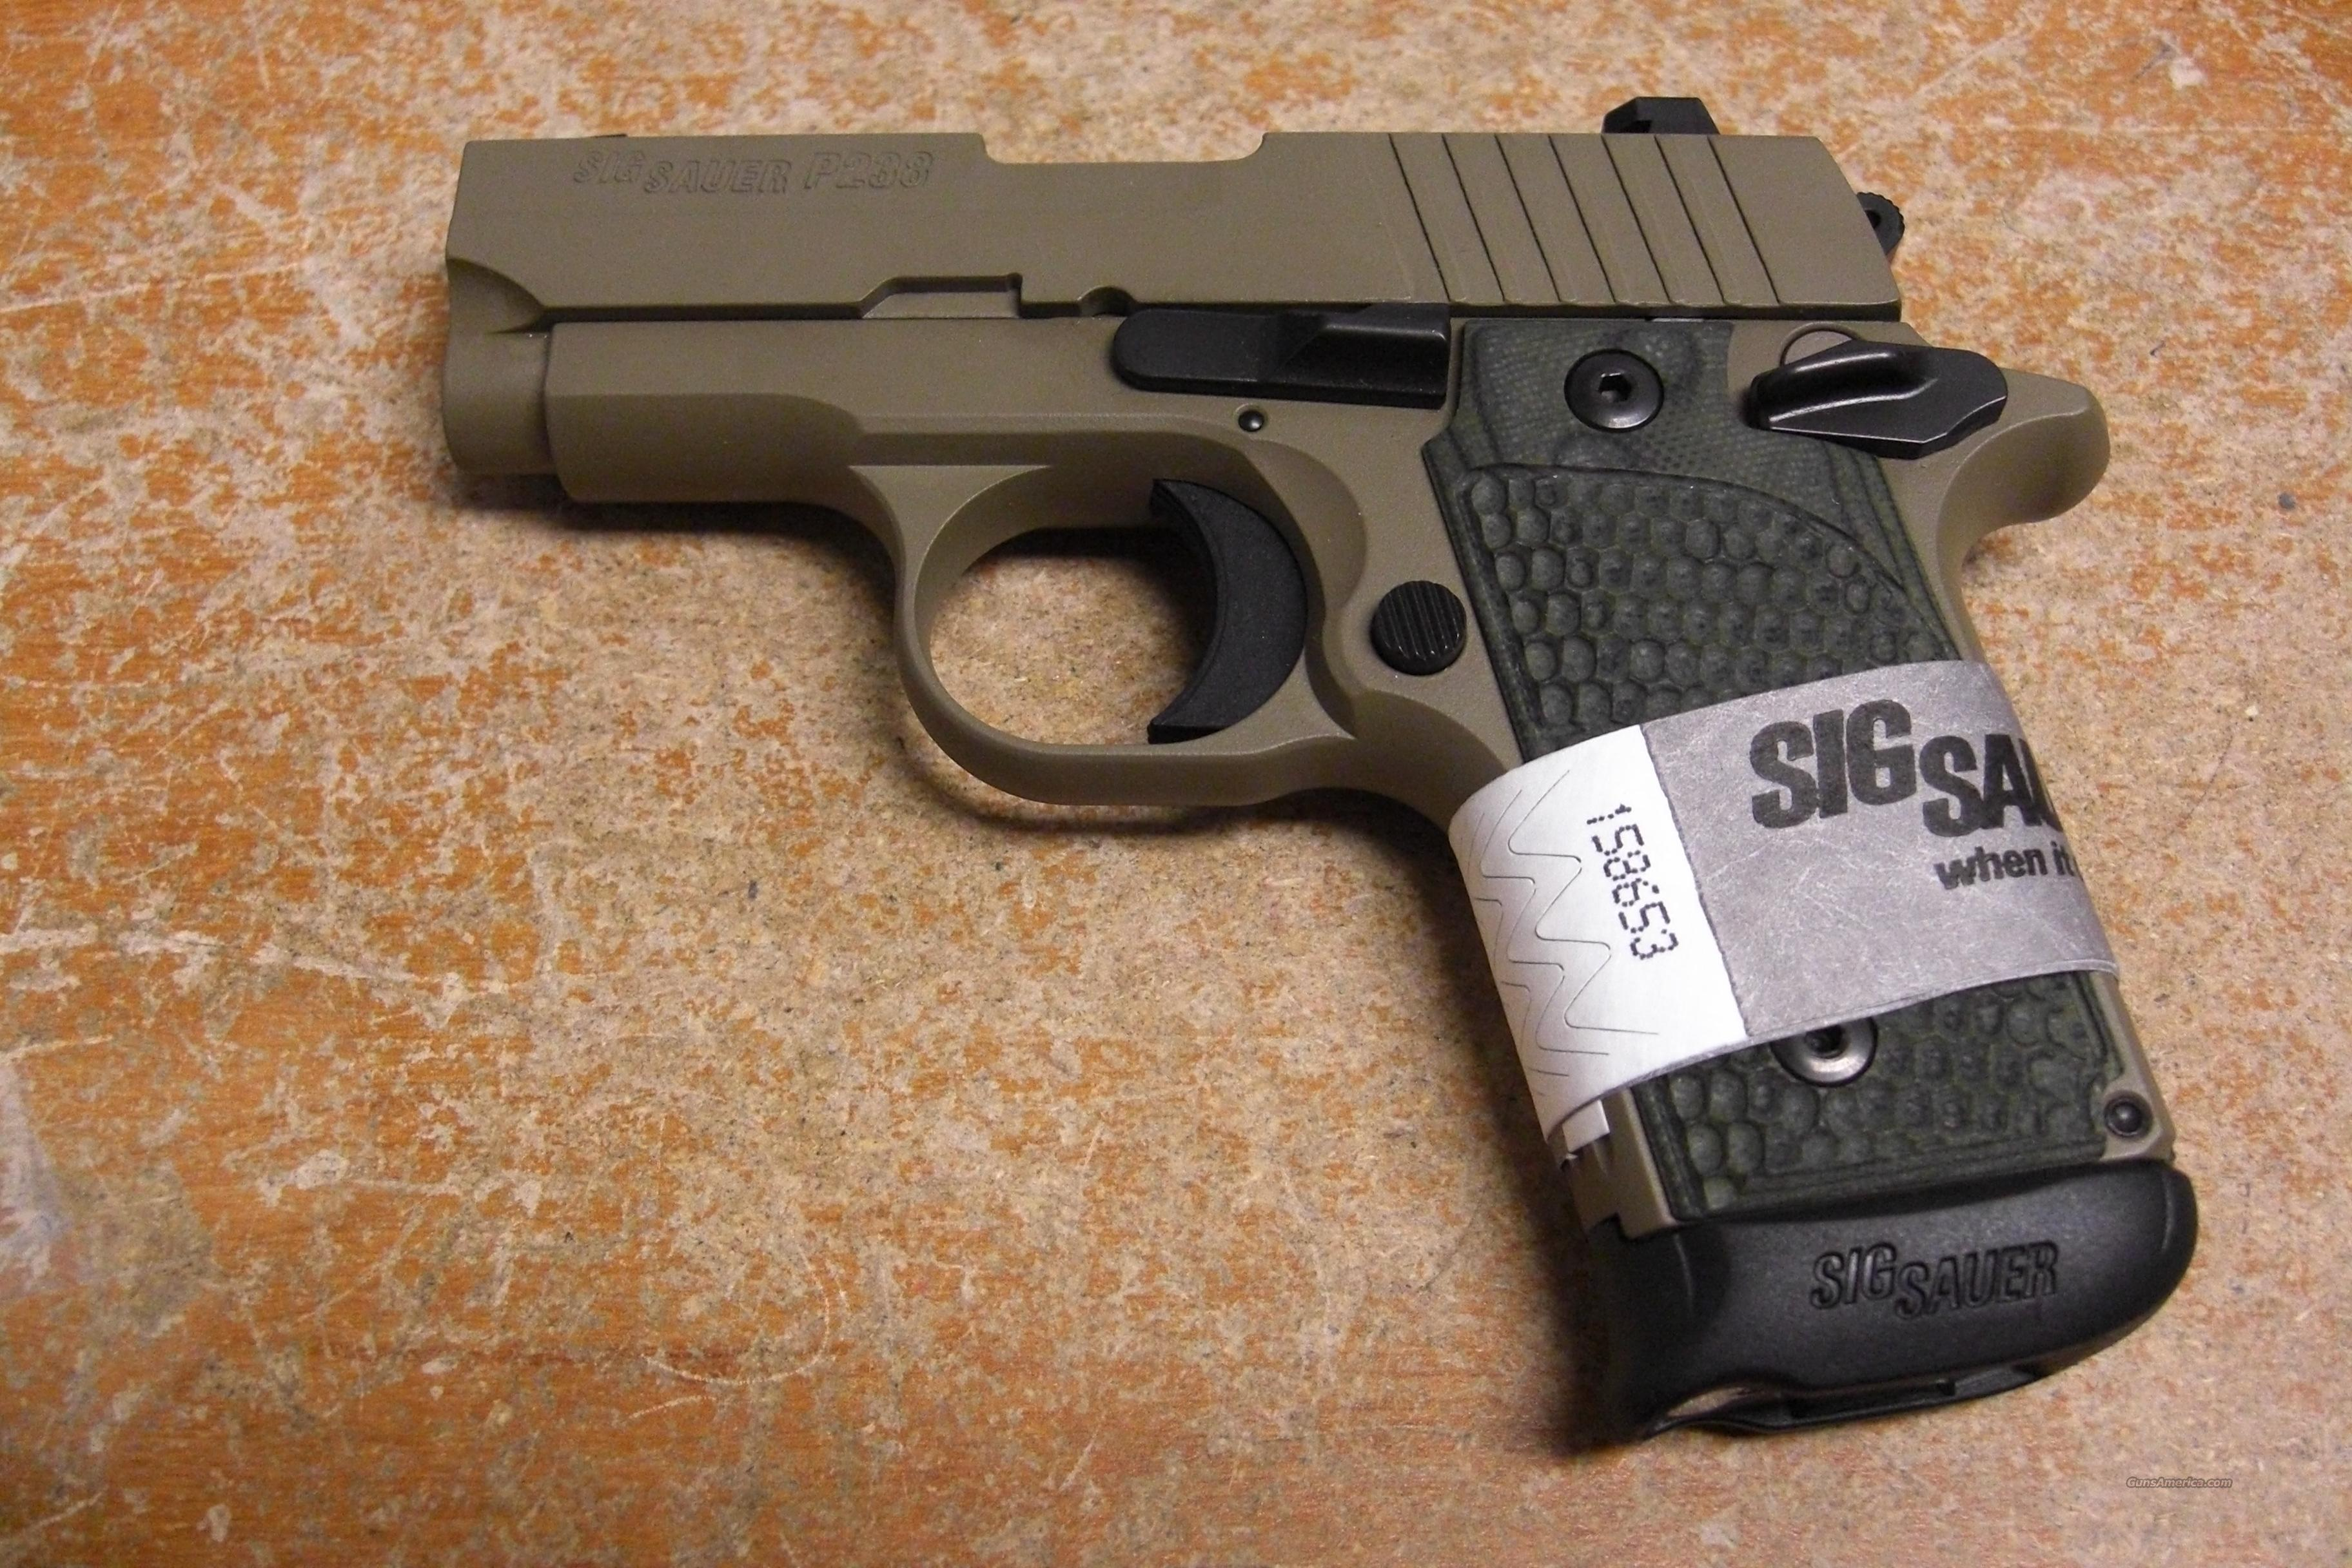 P238 Scorpion w/night sights FDE finish  Guns > Pistols > Sig - Sauer/Sigarms Pistols > Other